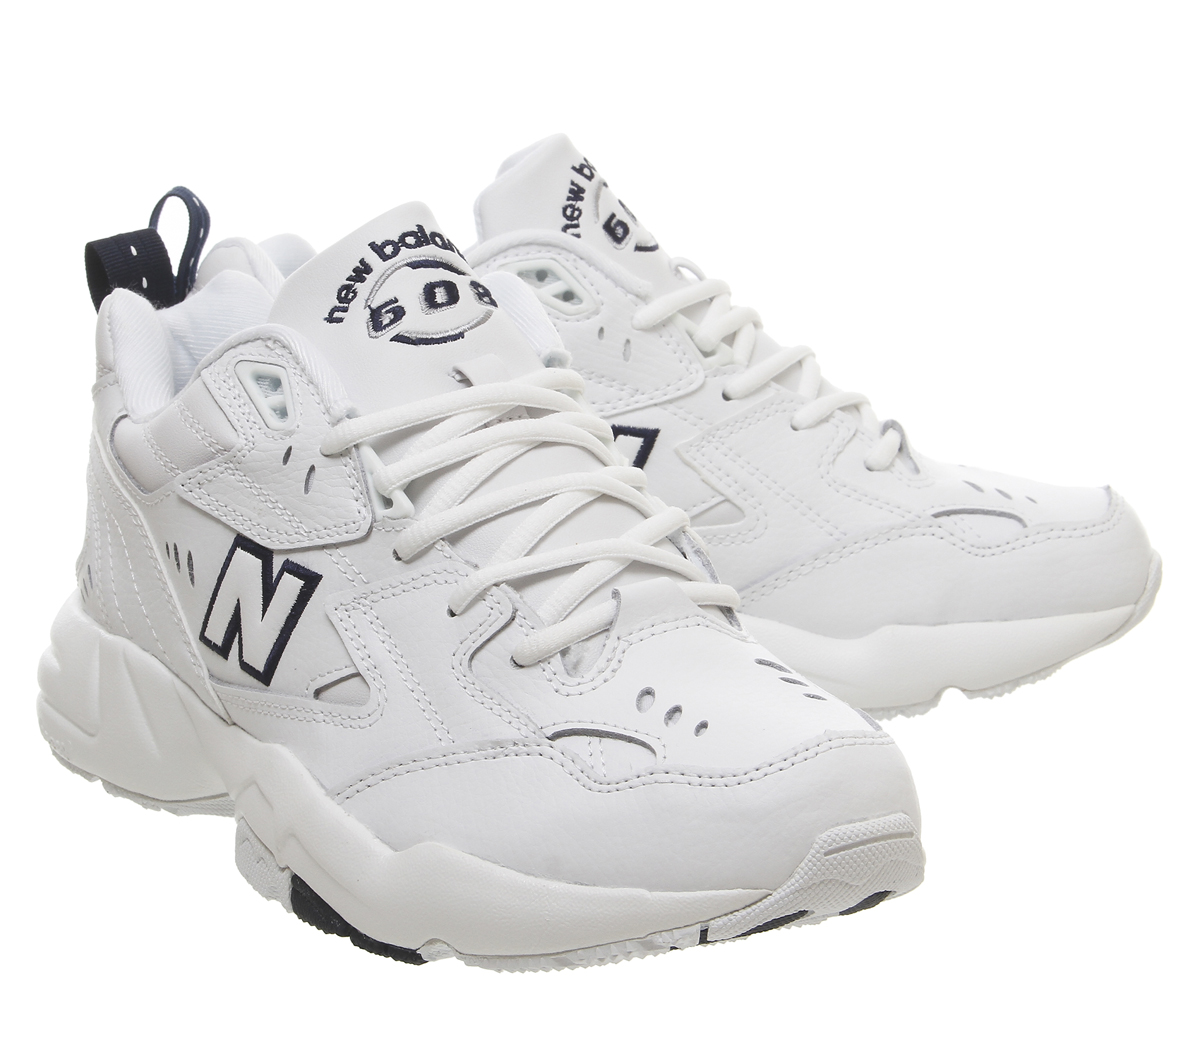 835750c4abc08 New Balance 608 Trainers White Navy Trainers Shoes